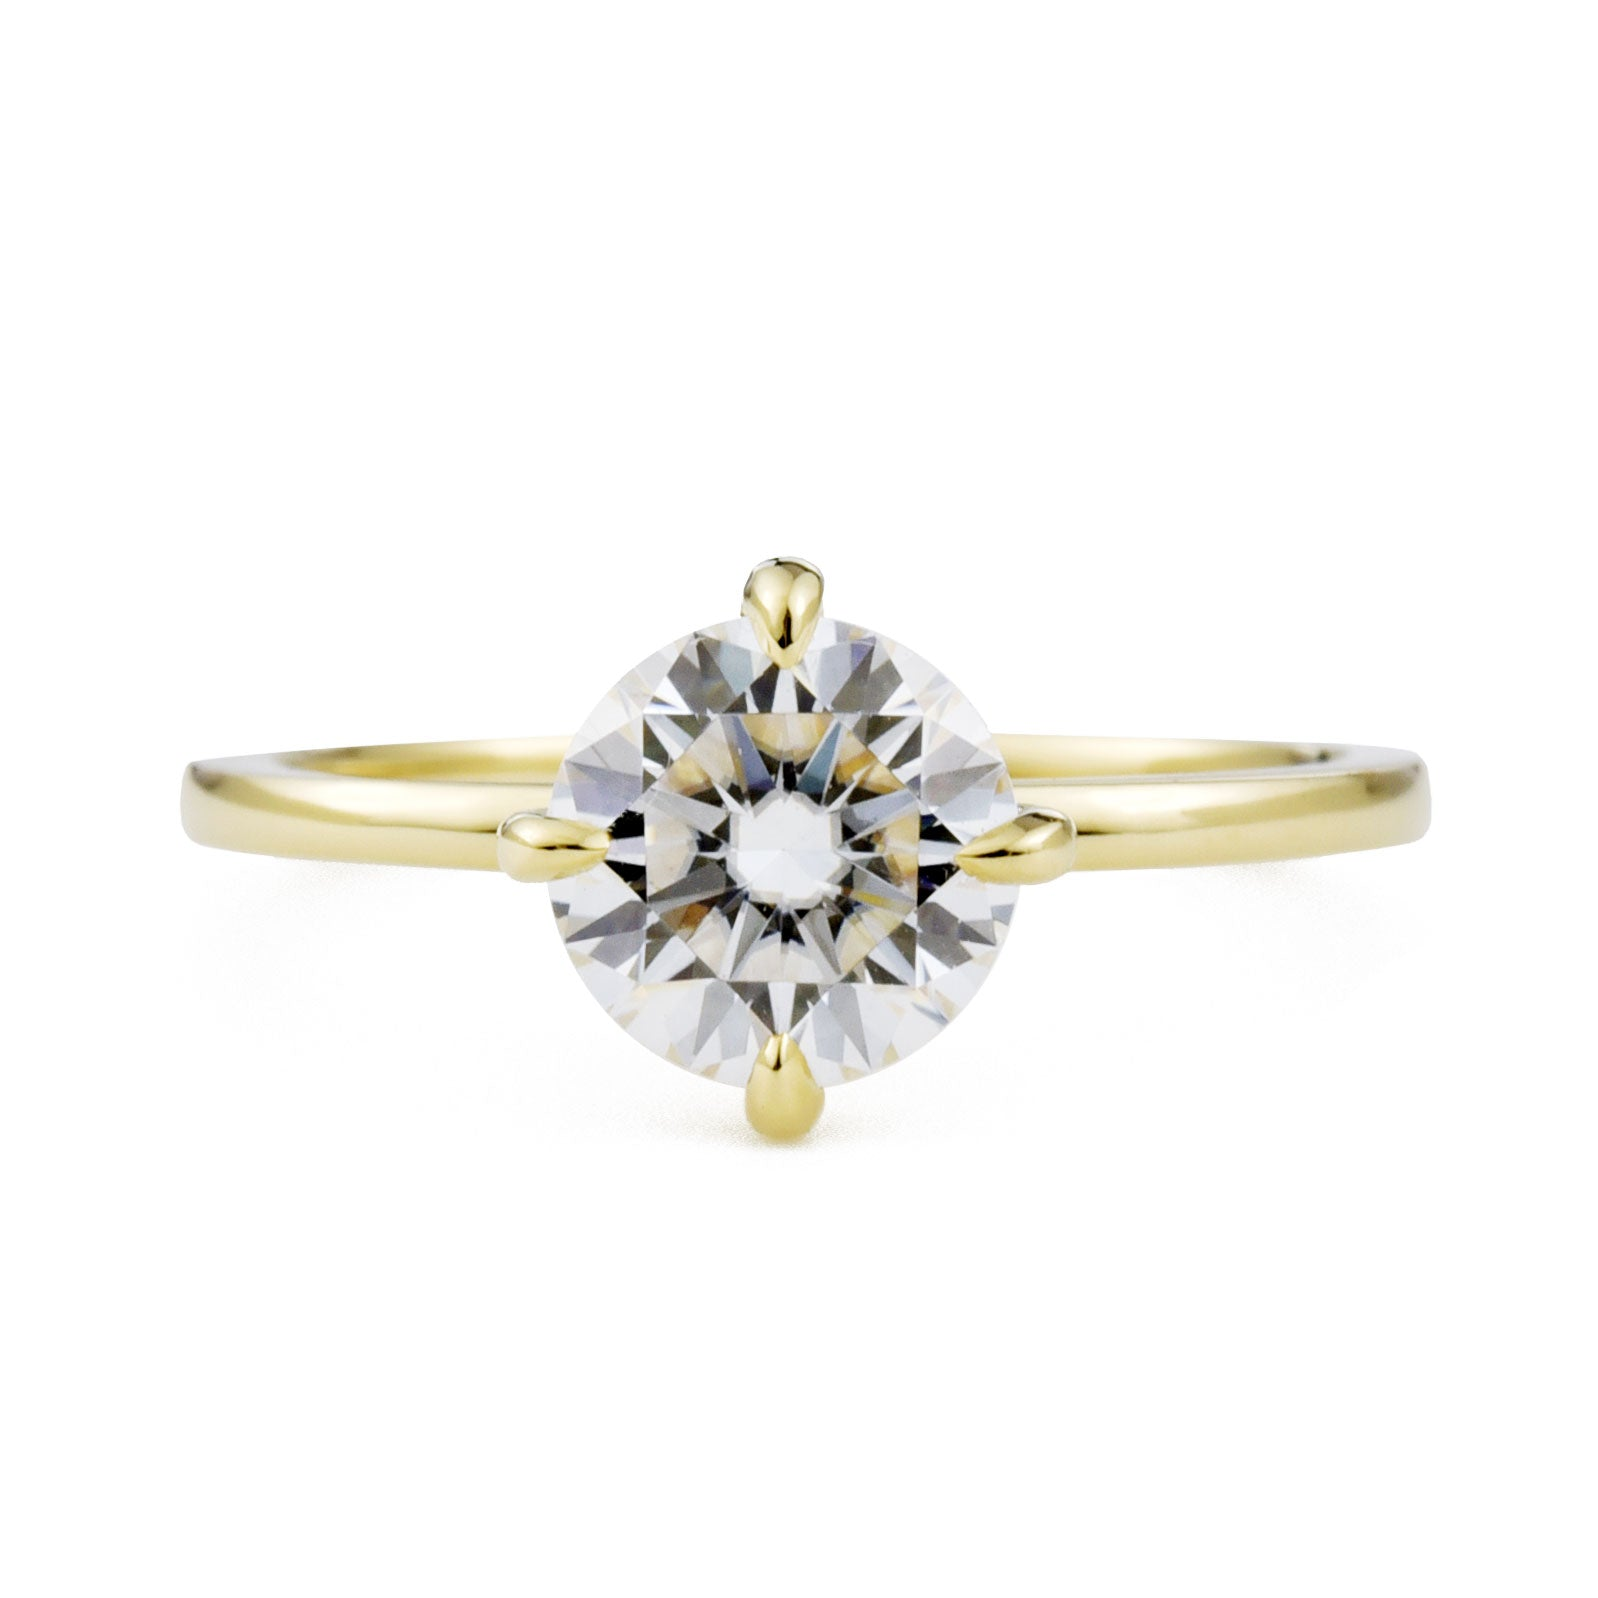 Vera 1ct Diamond Solitaire Engagement Ring in yellow gold